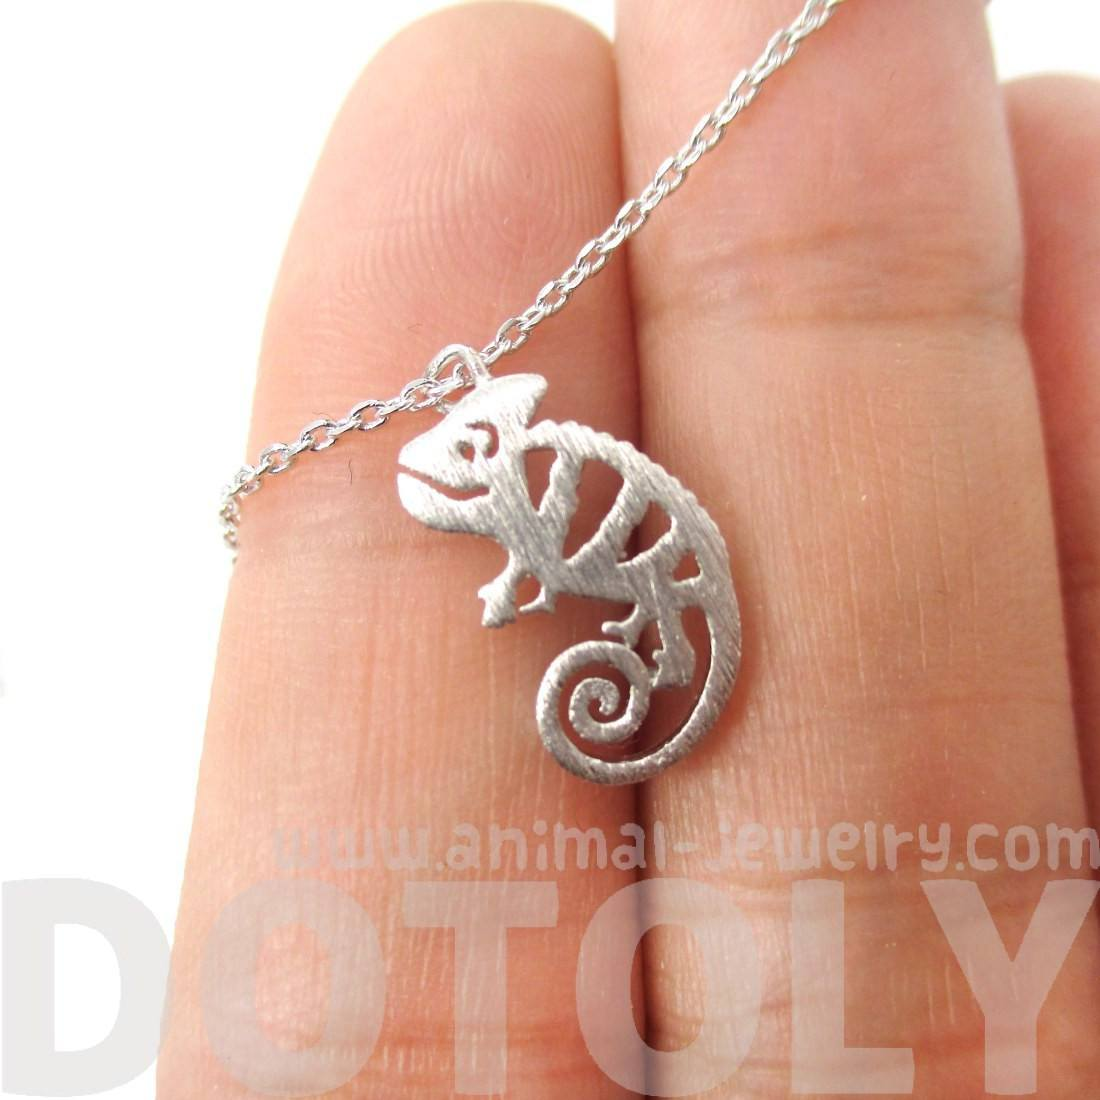 Adorable Pascal Chameleon Shaped Cut Out Charm Necklace in Silver